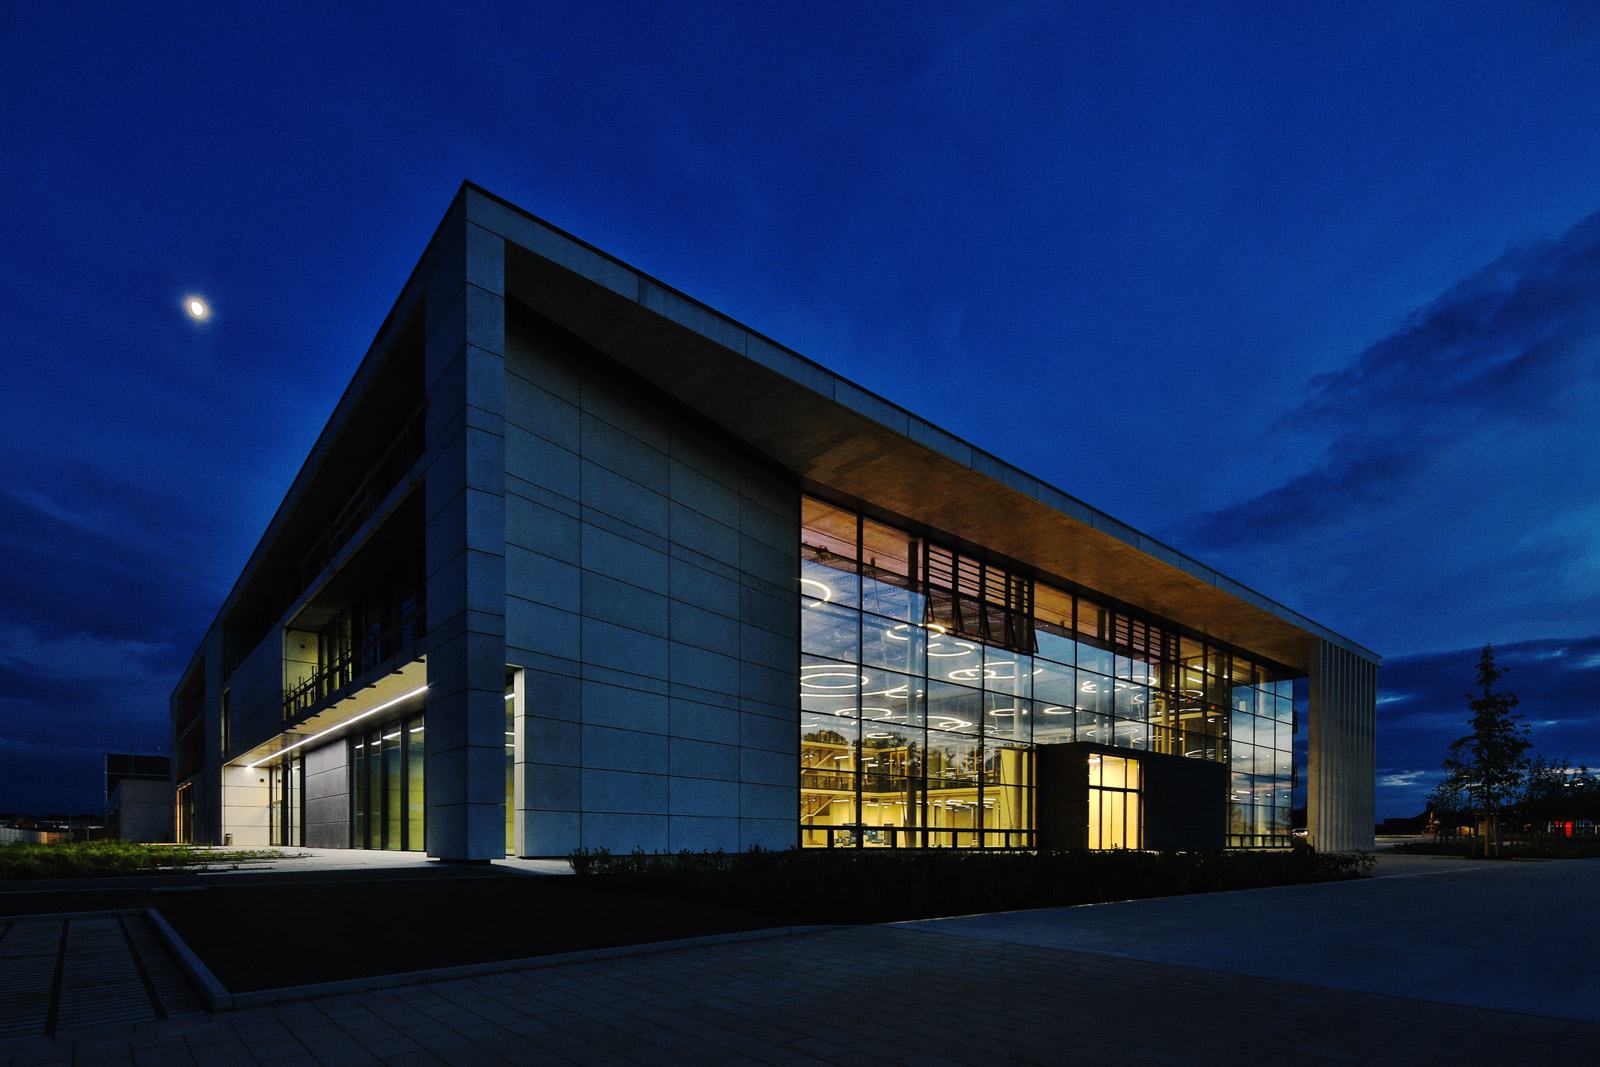 DIA179 German Industry Architecture Solarlux Campus Nacht